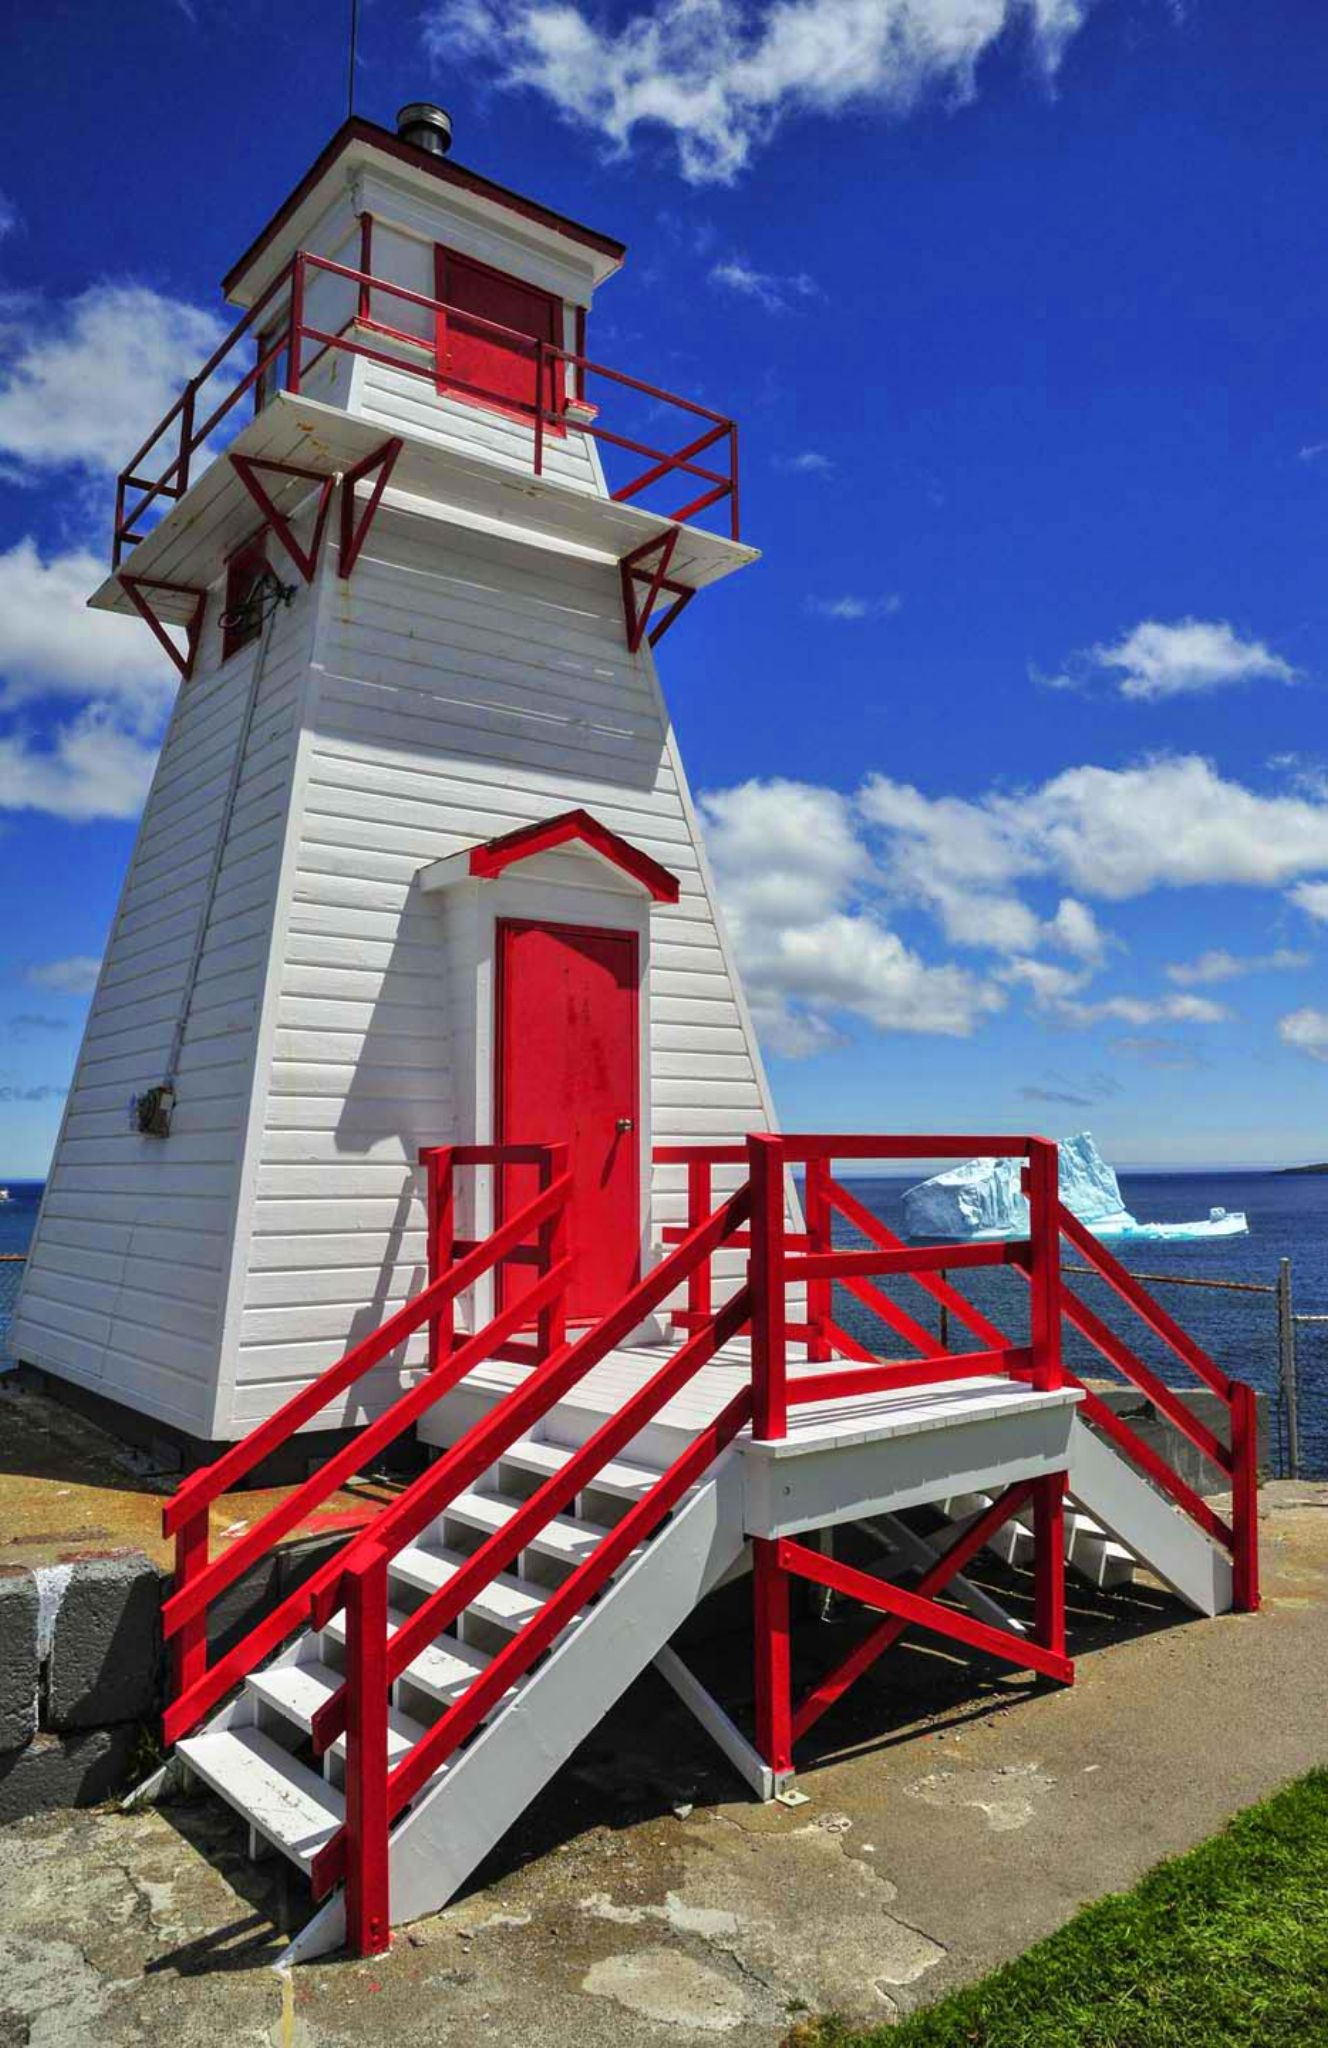 C_COR4402: Fort Amherst Lighthouse, St. John's, NL by Cyril1